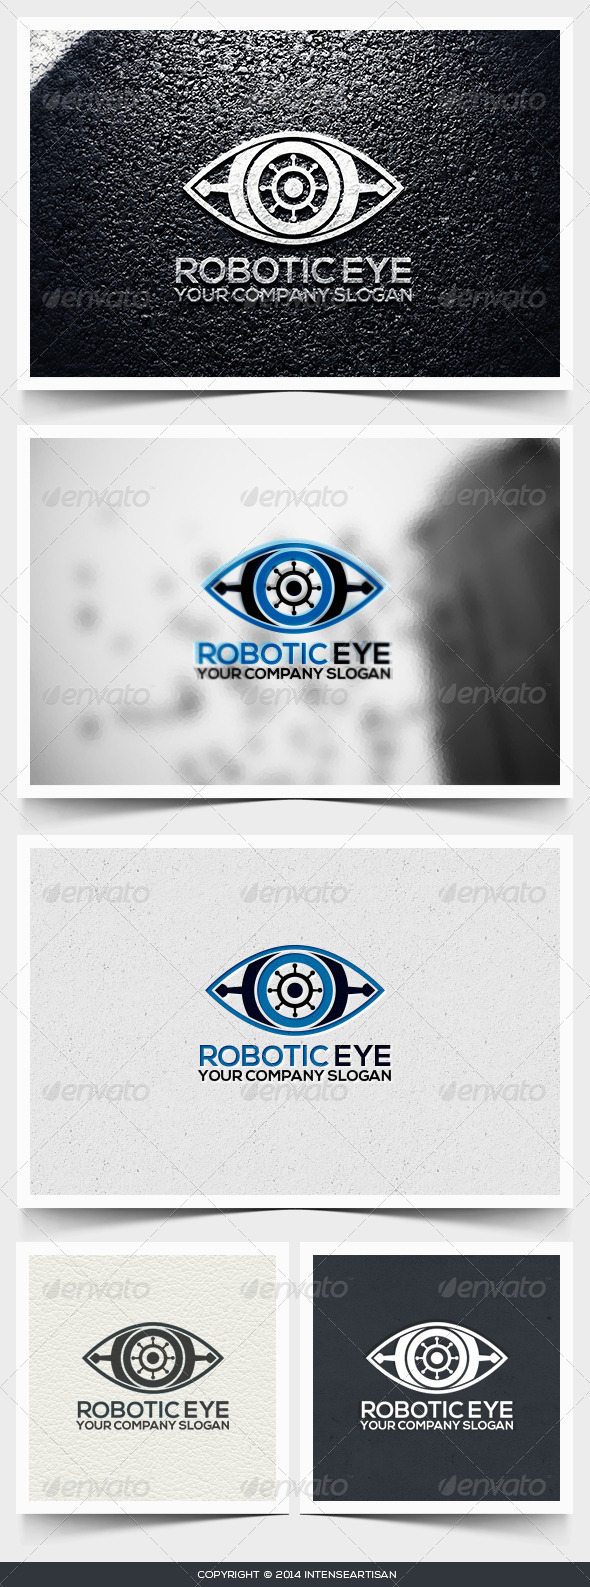 Robotic Eye Logo Template - Objects Logo Templates